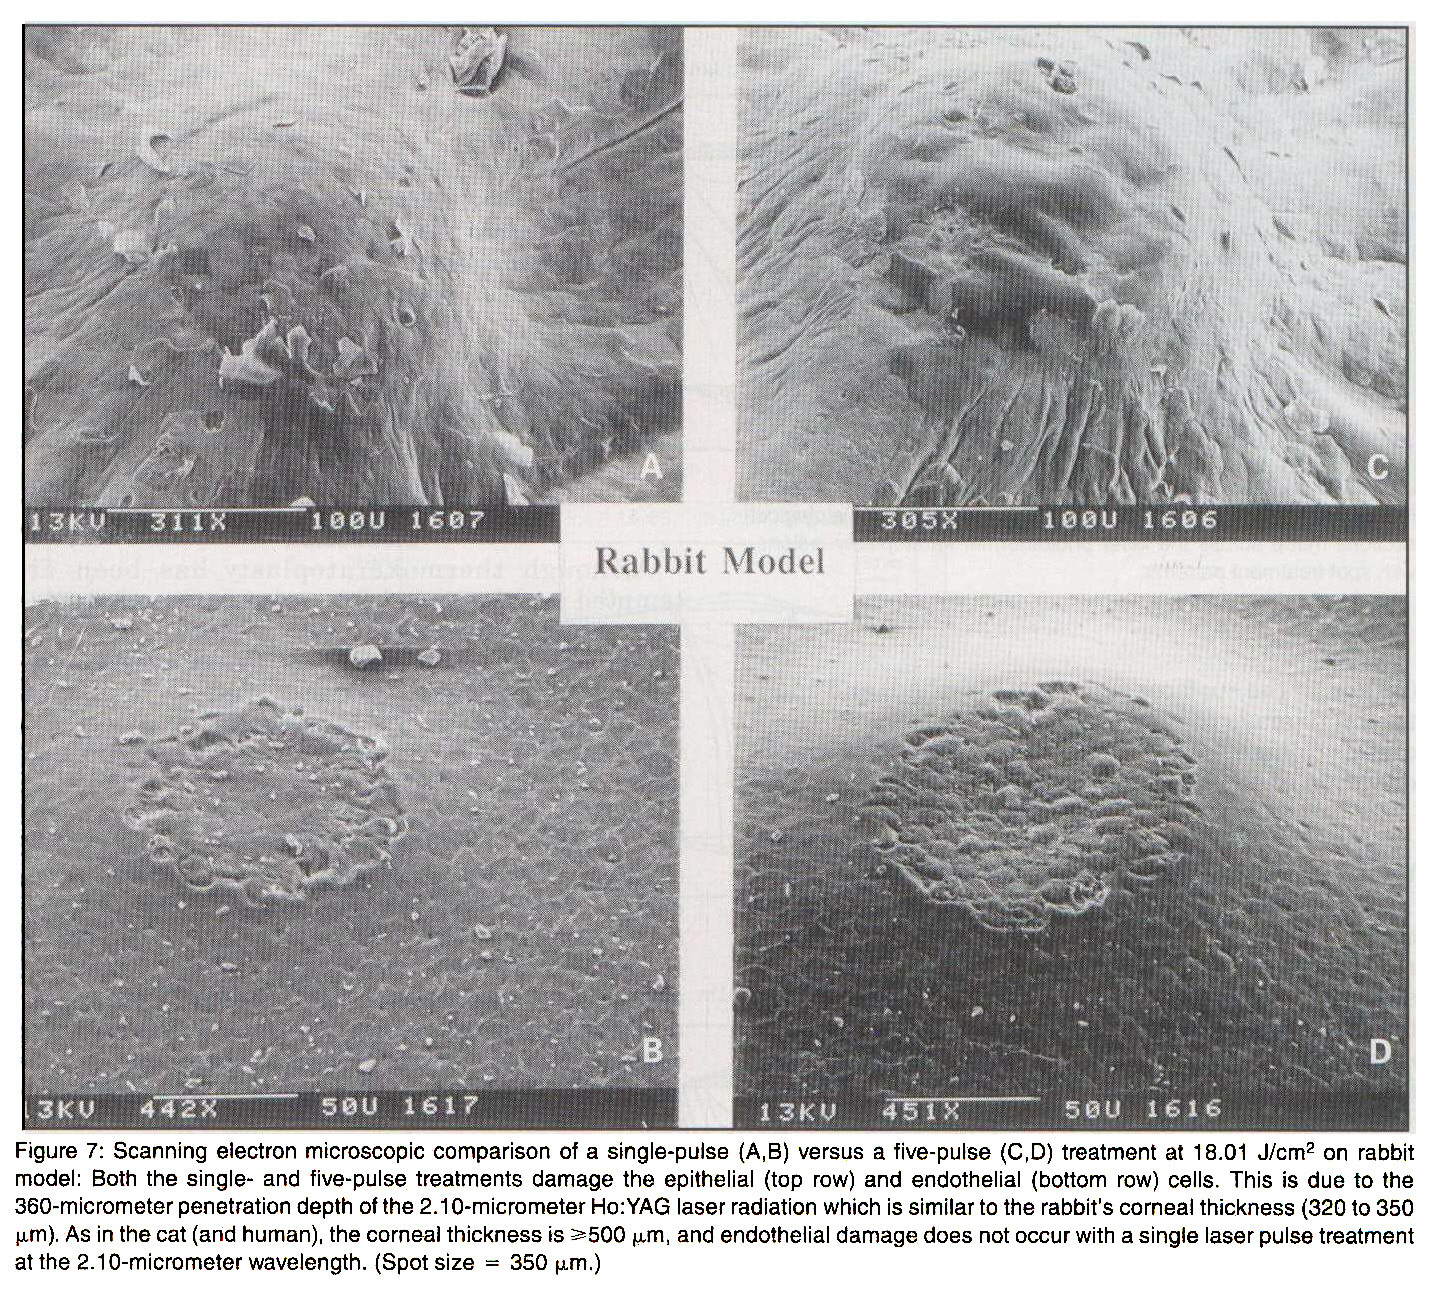 Figure 7: Scanning electron microscopic comparison of a single-pulse (A,B) versus a five-pulse (C1D) treatment at 18.01 J/cmp 2 on rabbit model: Both the single- and five-pulse treatments damage the epithelial (top row) and endothelial (bottom row) cells. This is due to the 360-micrometer penetration depth of the 2.10-micrometer Ho: YAG laser radiation which is similar to the rabbit's corneal thickness (320 to 350 µm). As in the cat (and human), the corneal thickness is >500 µm, and endothelial damage does not occur with a single laser pulse treatment at the 2.10-micrometer wavelength. (Spot size = 350 µm).